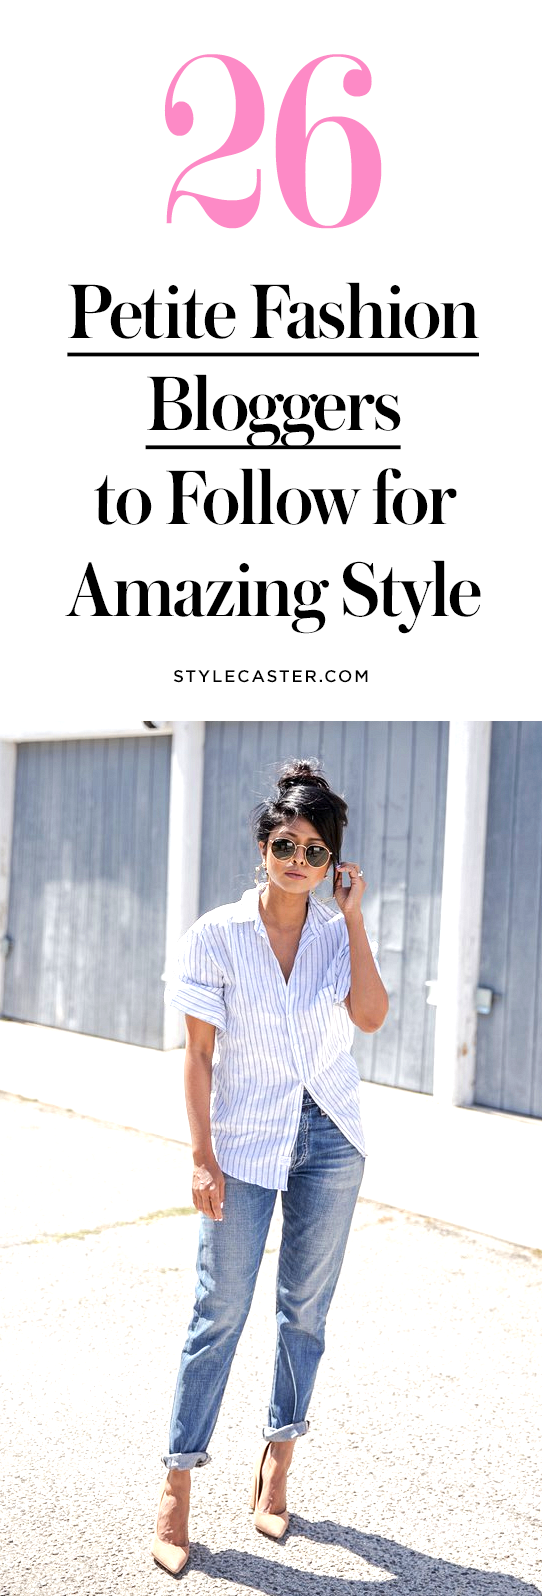 26 Petite Fashion Bloggers to Follow for Major Outfit Inspiration